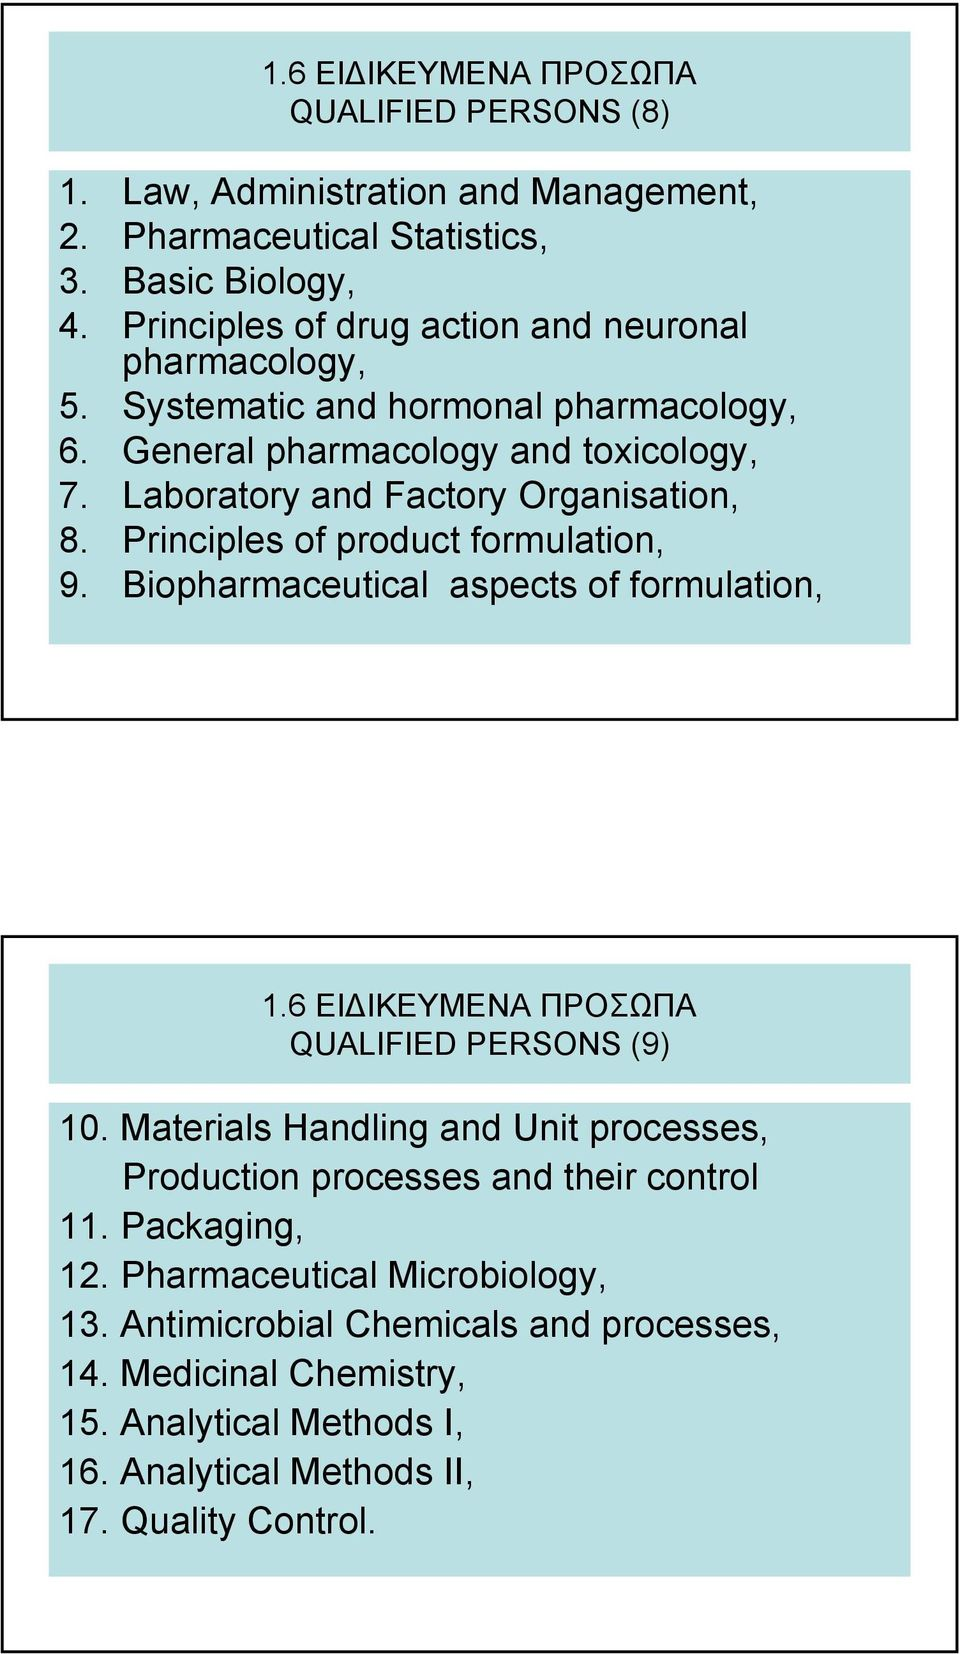 Laboratory and Factory Organisation, 8. Principles of product formulation, 9. Biopharmaceutical aspects of formulation, QUALIFIED PERSONS (9) 10.